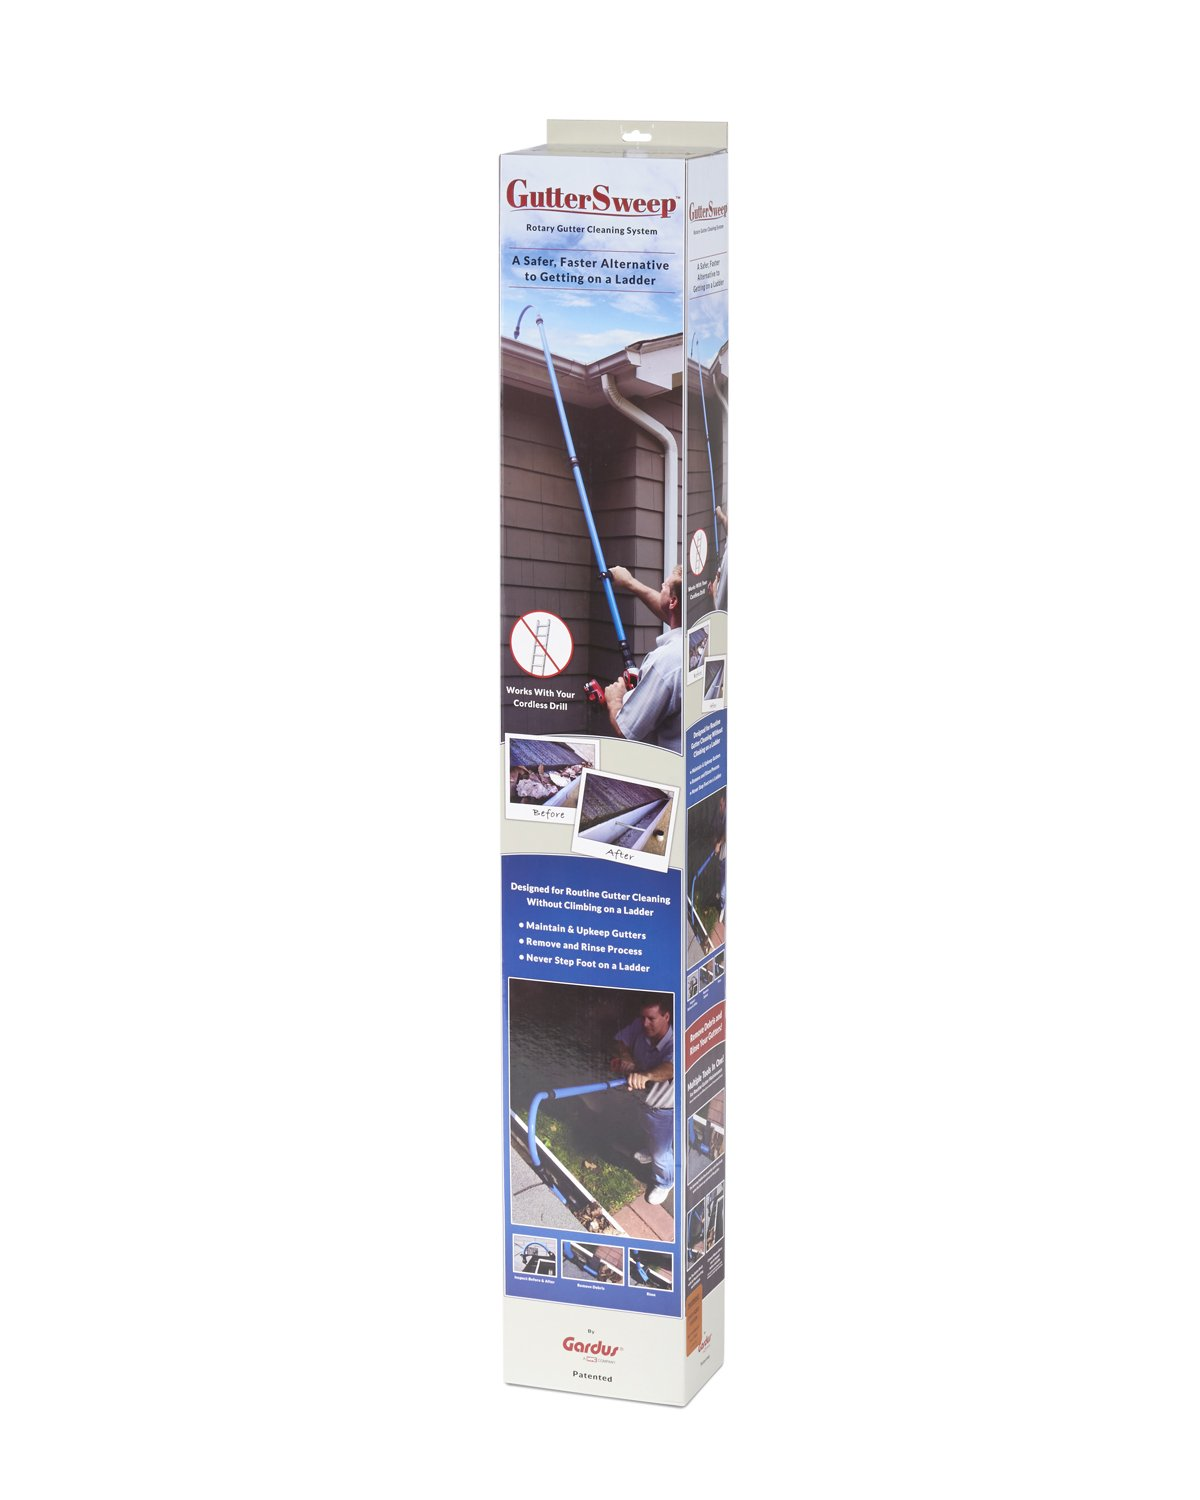 Gardus GS900 GutterSweep Rotary Gutter Cleaning System